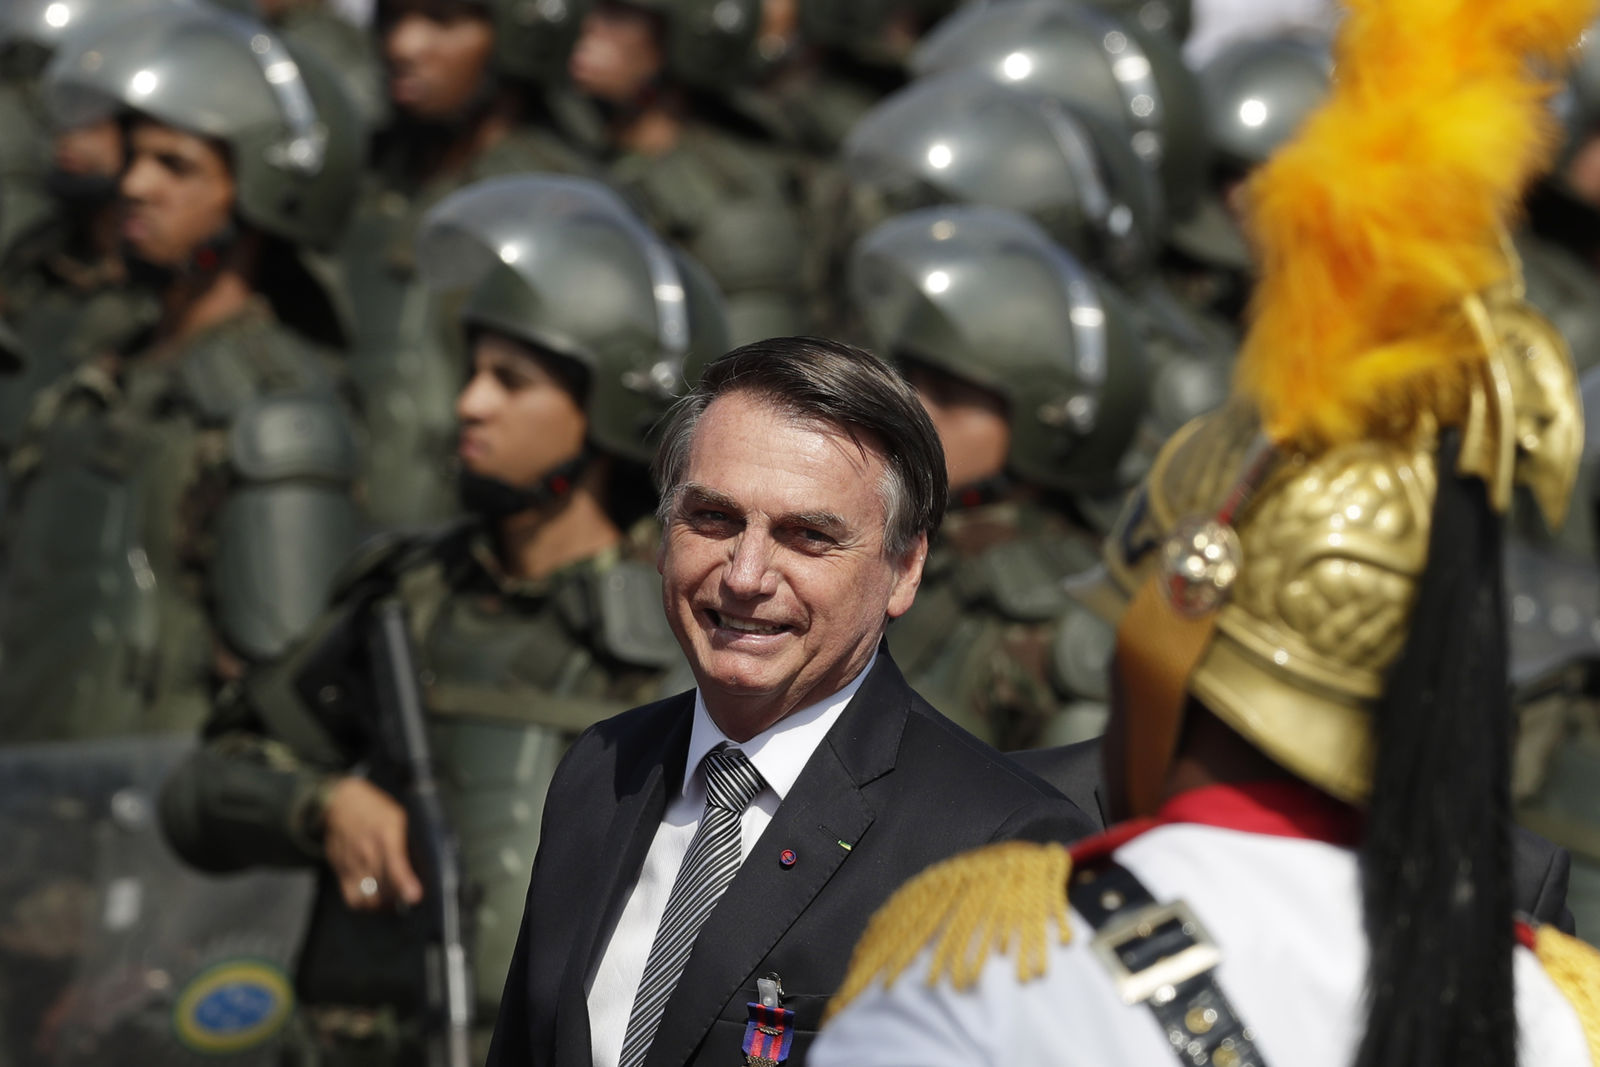 Brazils President Jair Bolsonaro arrive to attend a military ceremony for the Day of the Soldier, at Army Headquarters in Brasilia, Brazil, Friday, Aug. 23, 2019.{ } (AP Photo/Eraldo Peres)